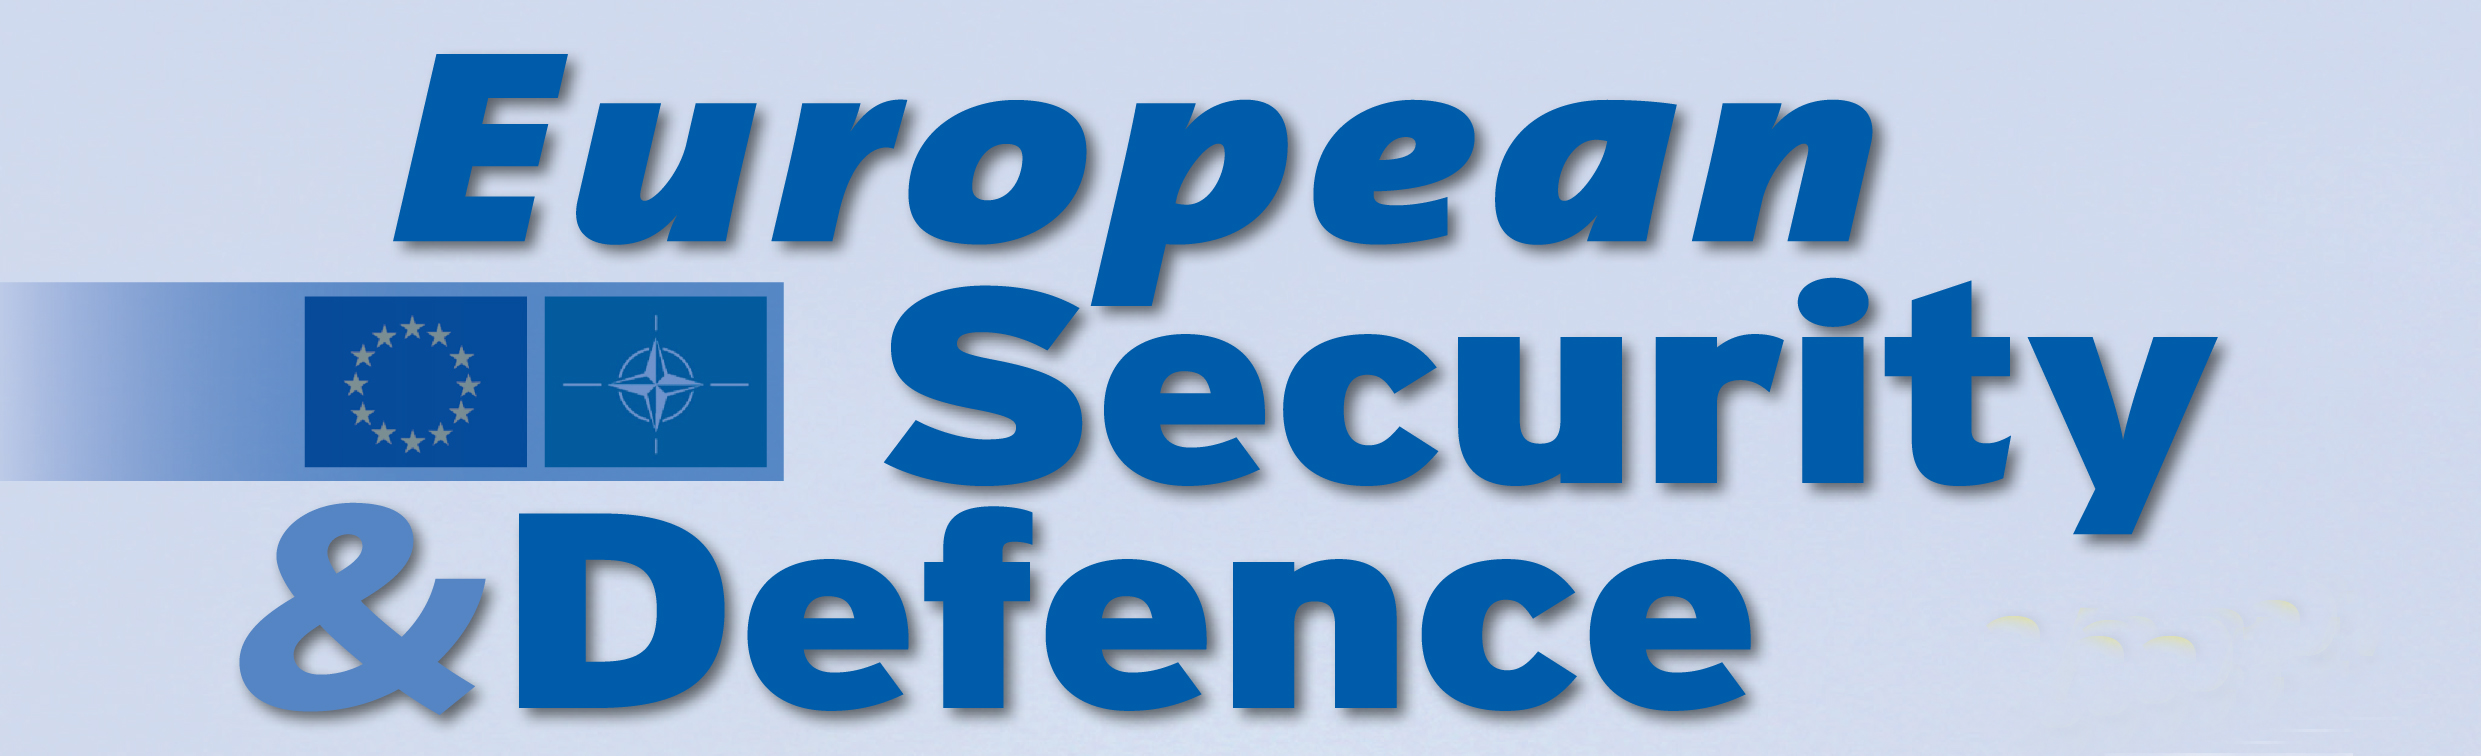 European Security & Defence (ESD)